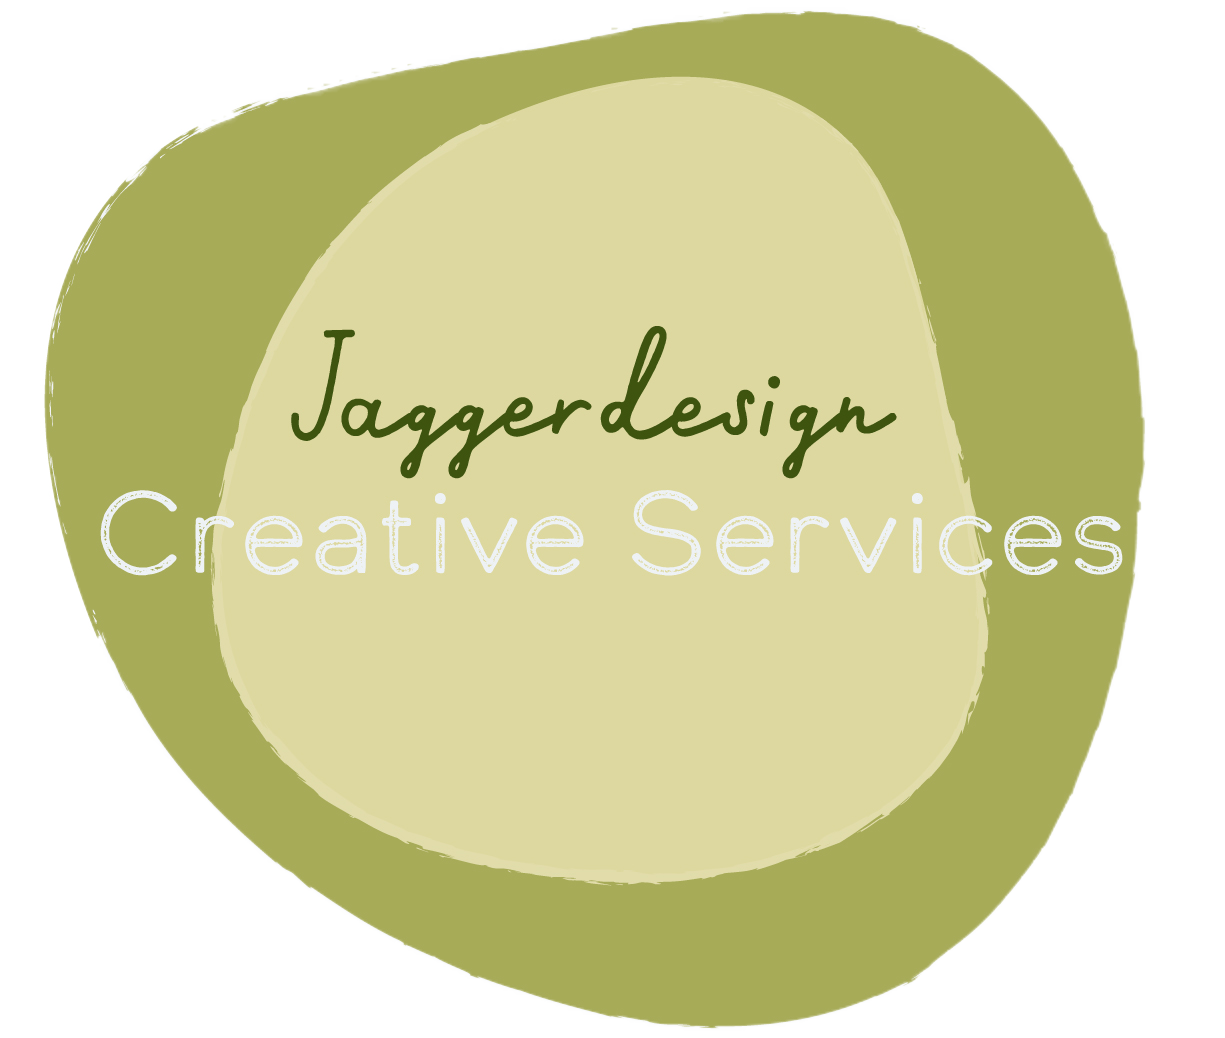 Jaggerdesign, Creative Services, Lymington